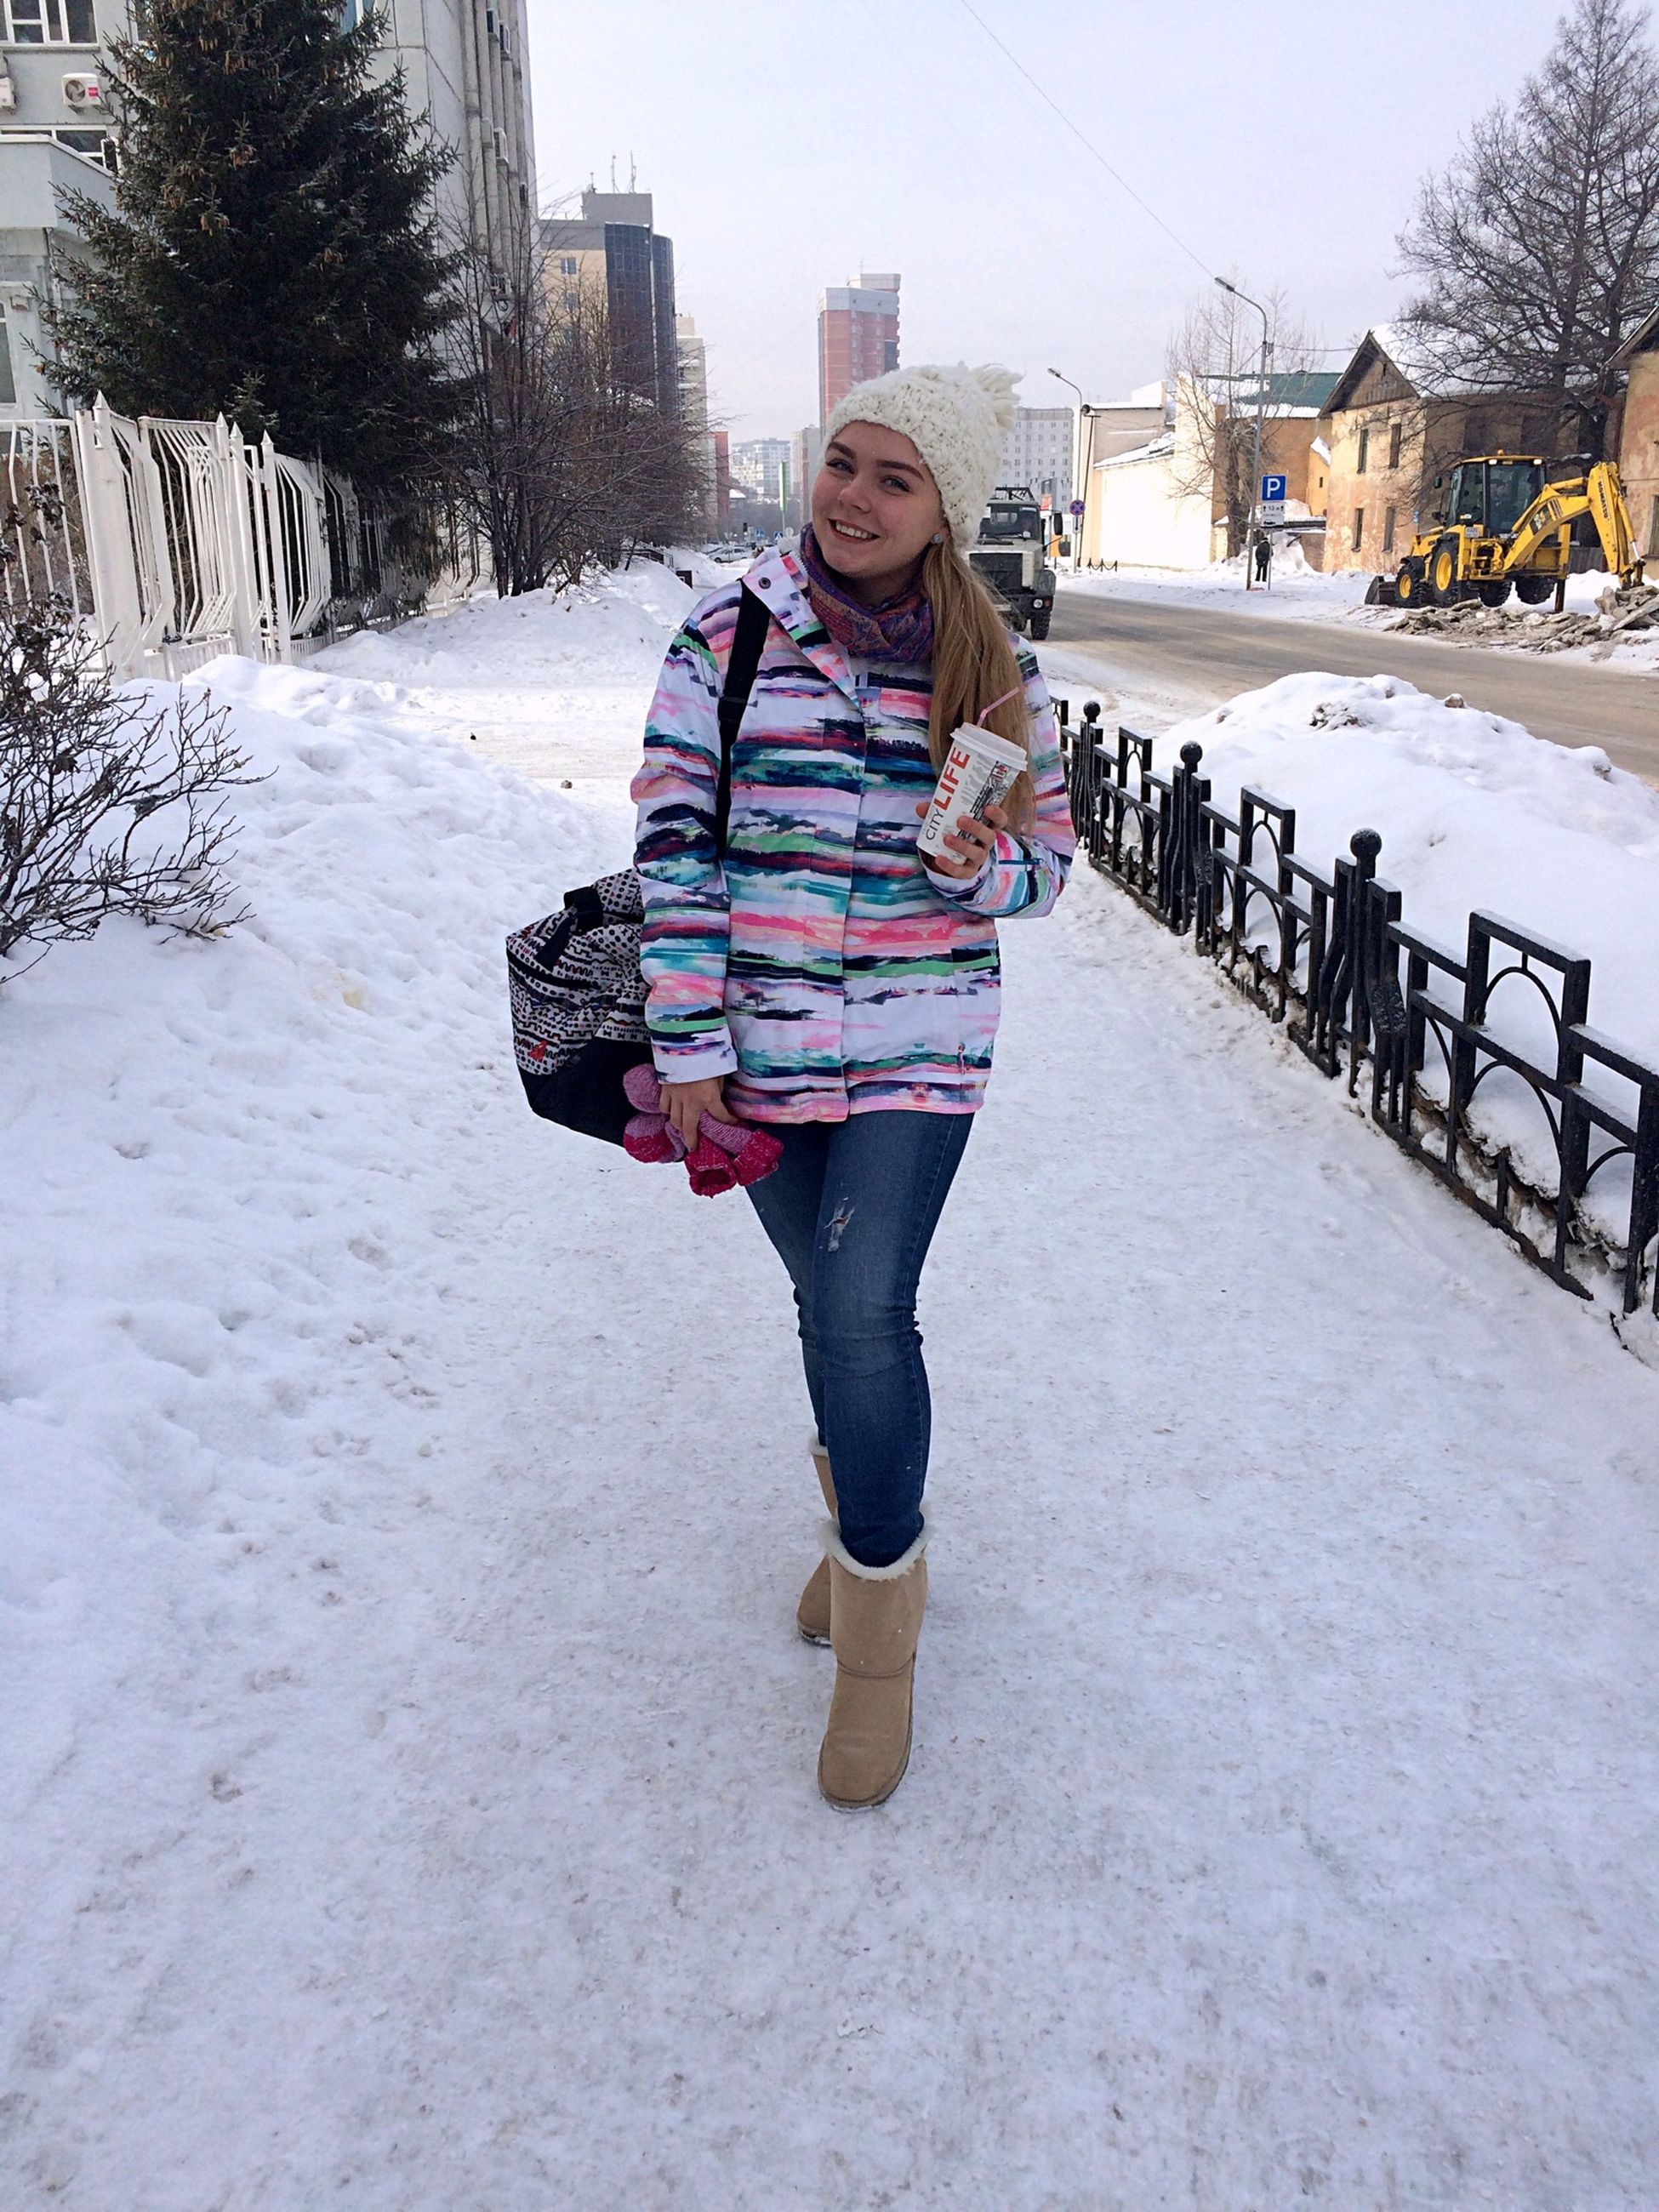 full length, lifestyles, winter, person, casual clothing, leisure activity, snow, cold temperature, warm clothing, season, building exterior, front view, built structure, young adult, standing, architecture, street, looking at camera